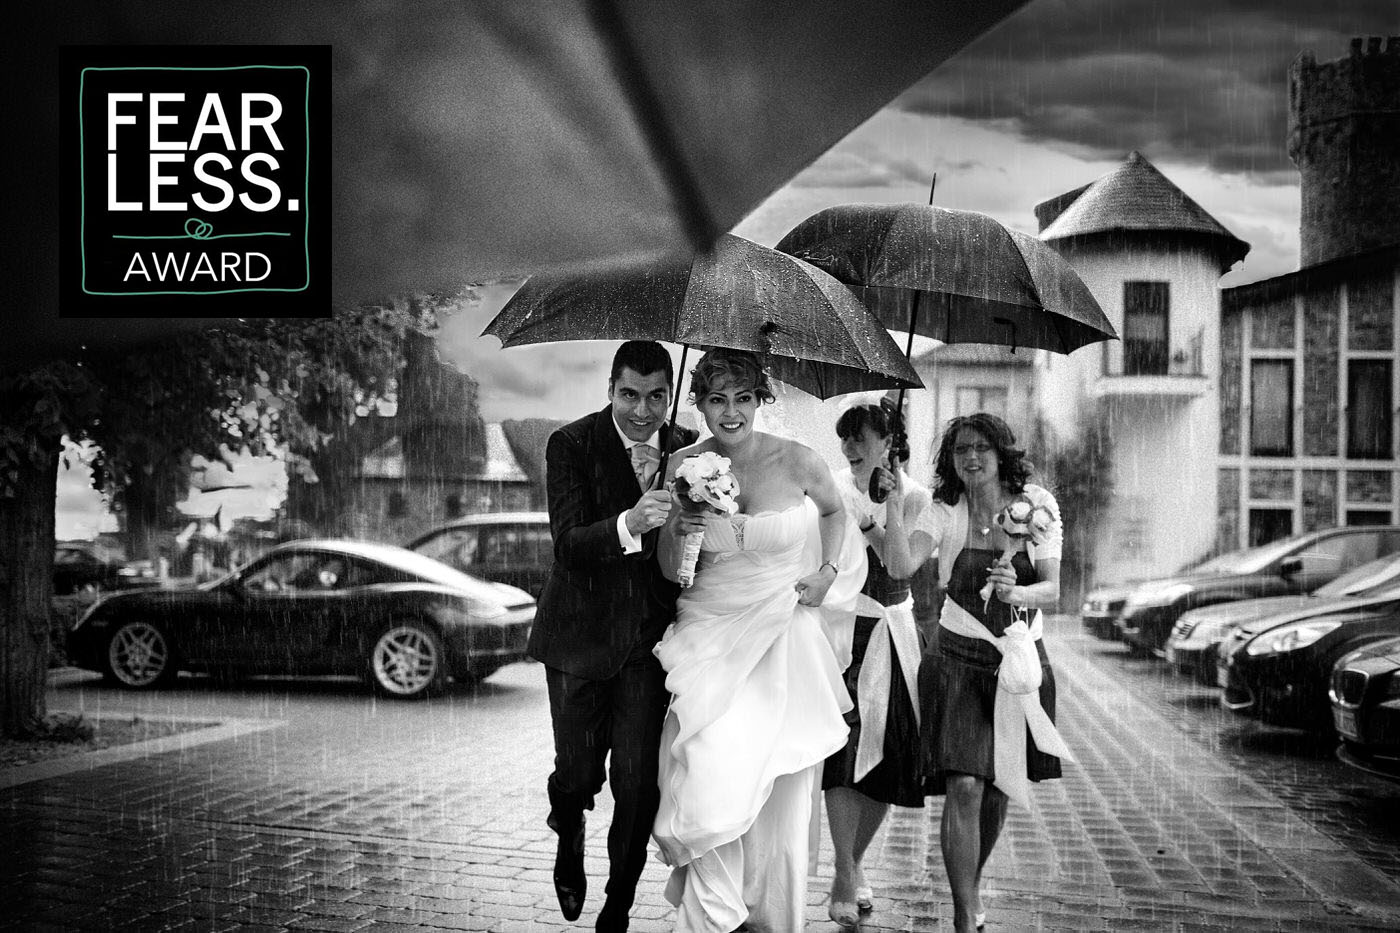 award-winning-wedding-photos-ispwp-fearless-06